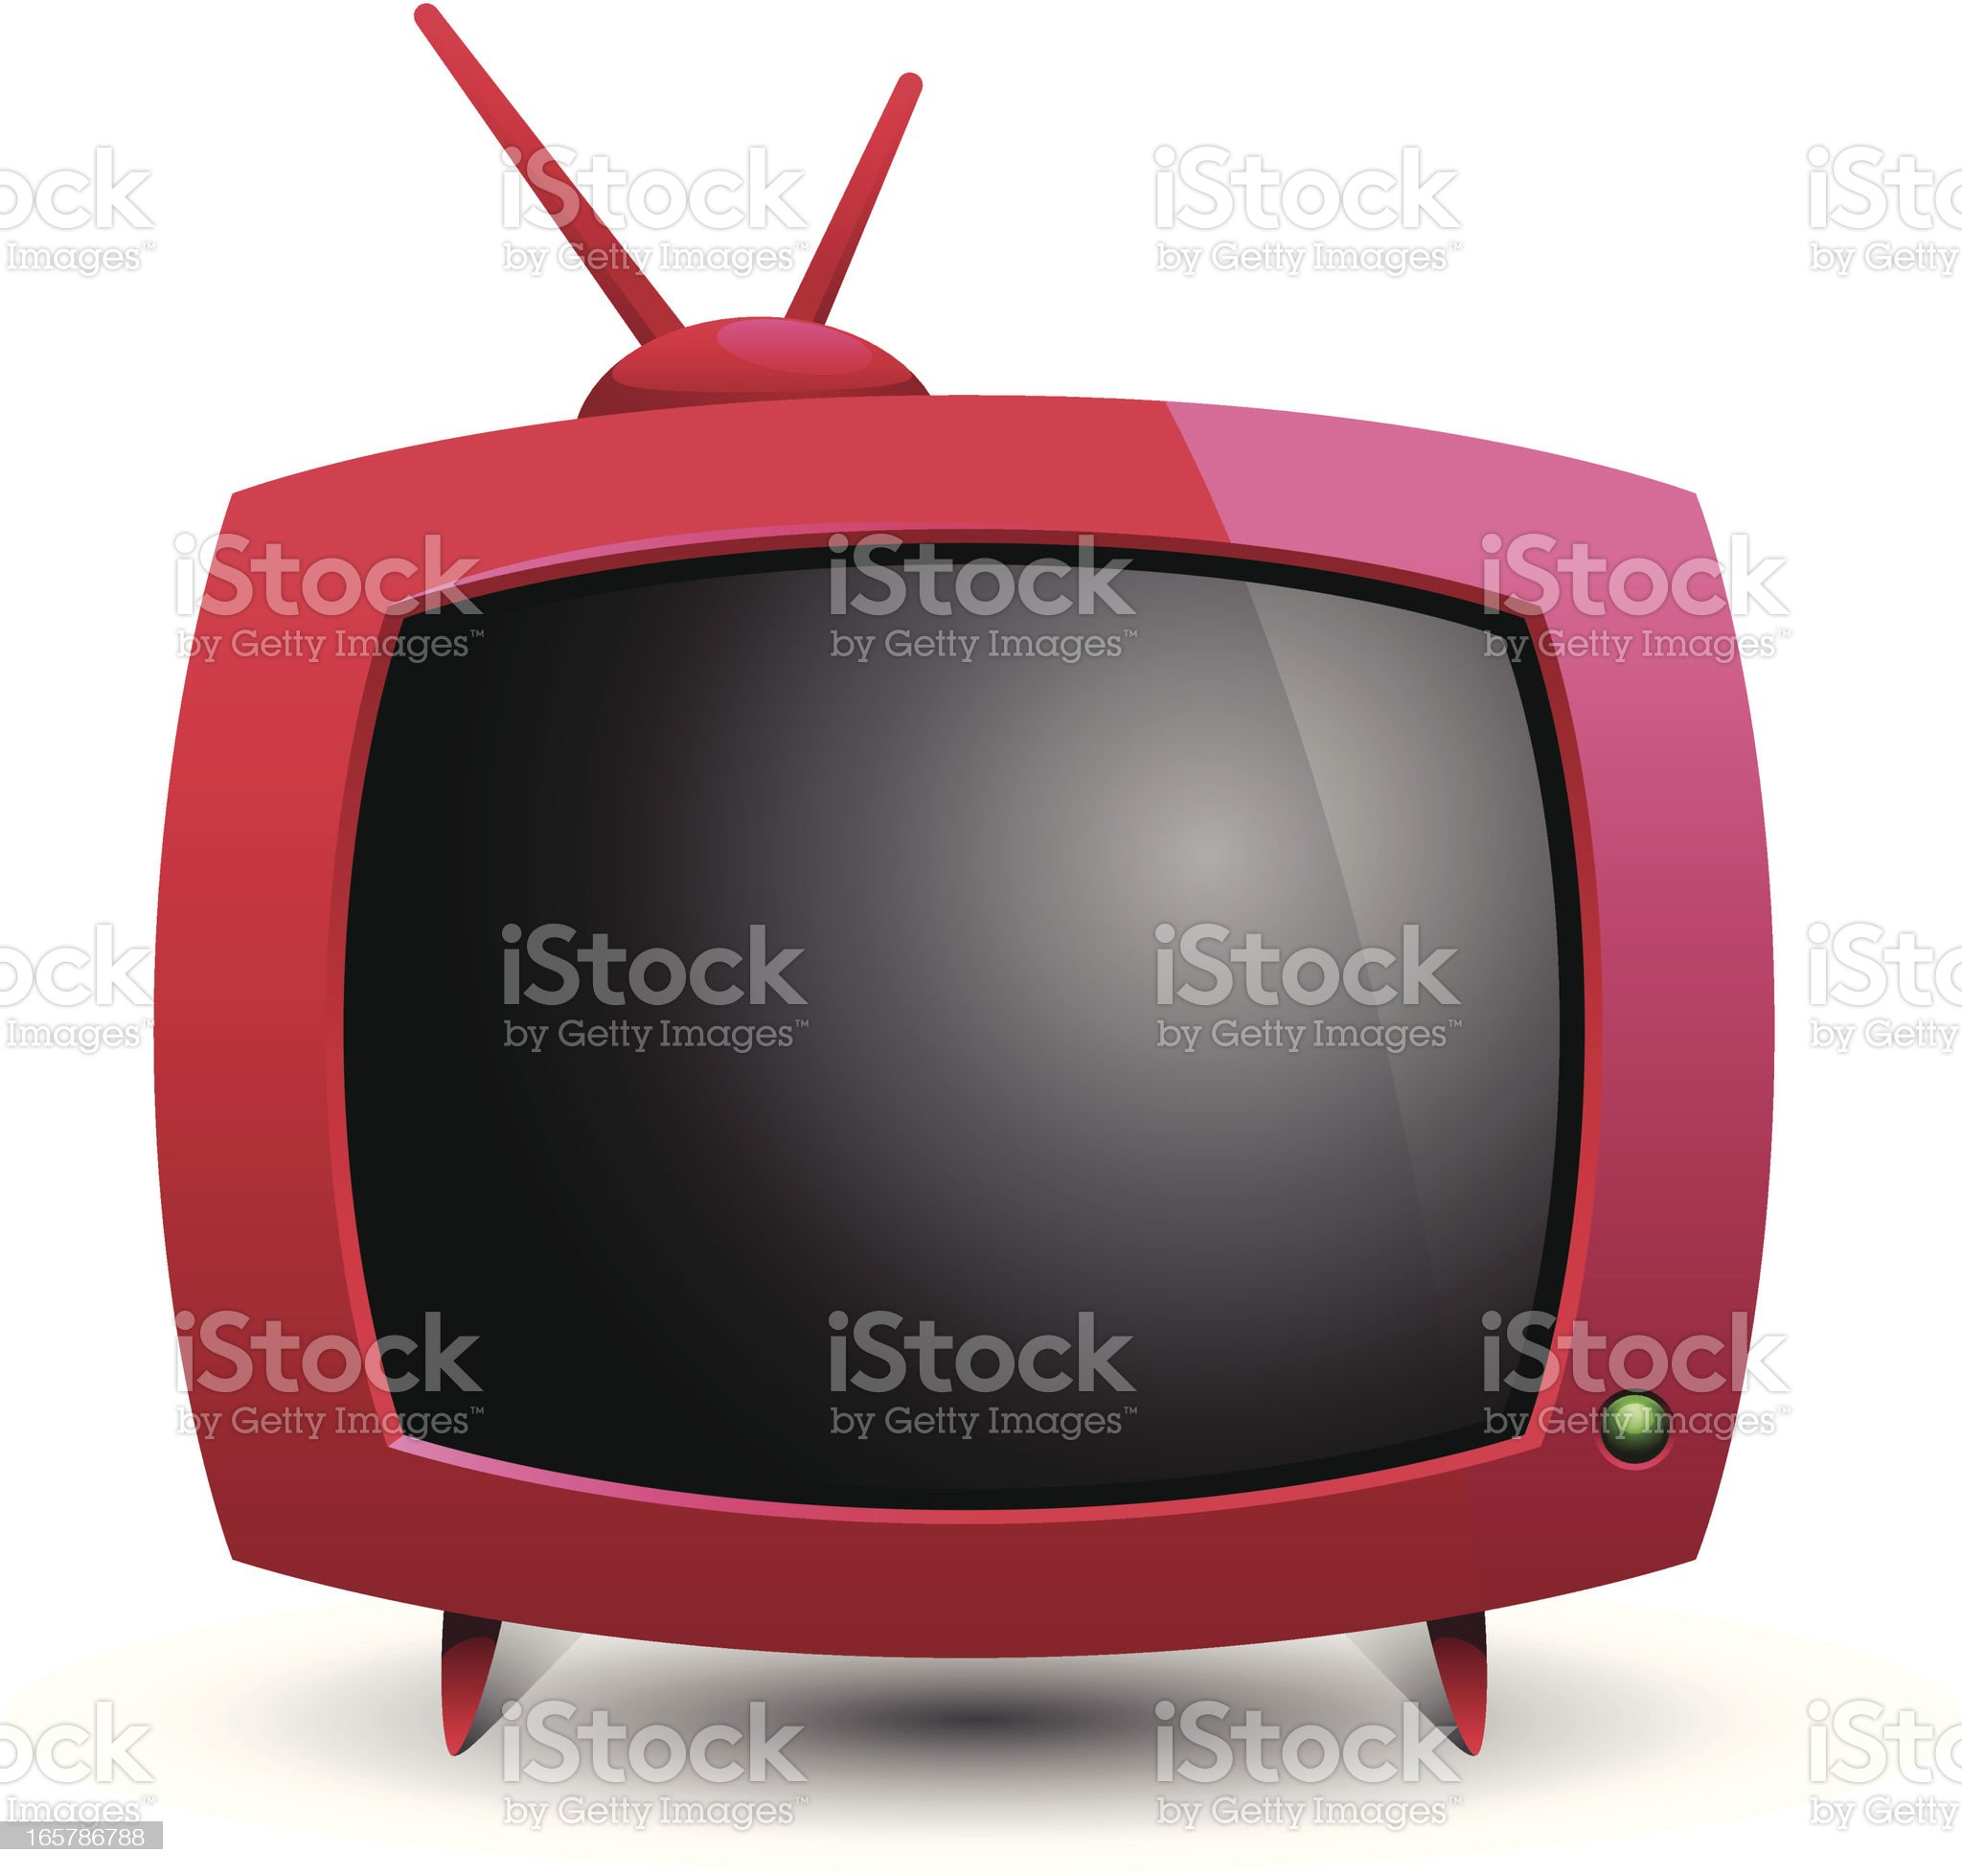 Illustration of red old television blank screen and antena royalty-free stock vector art